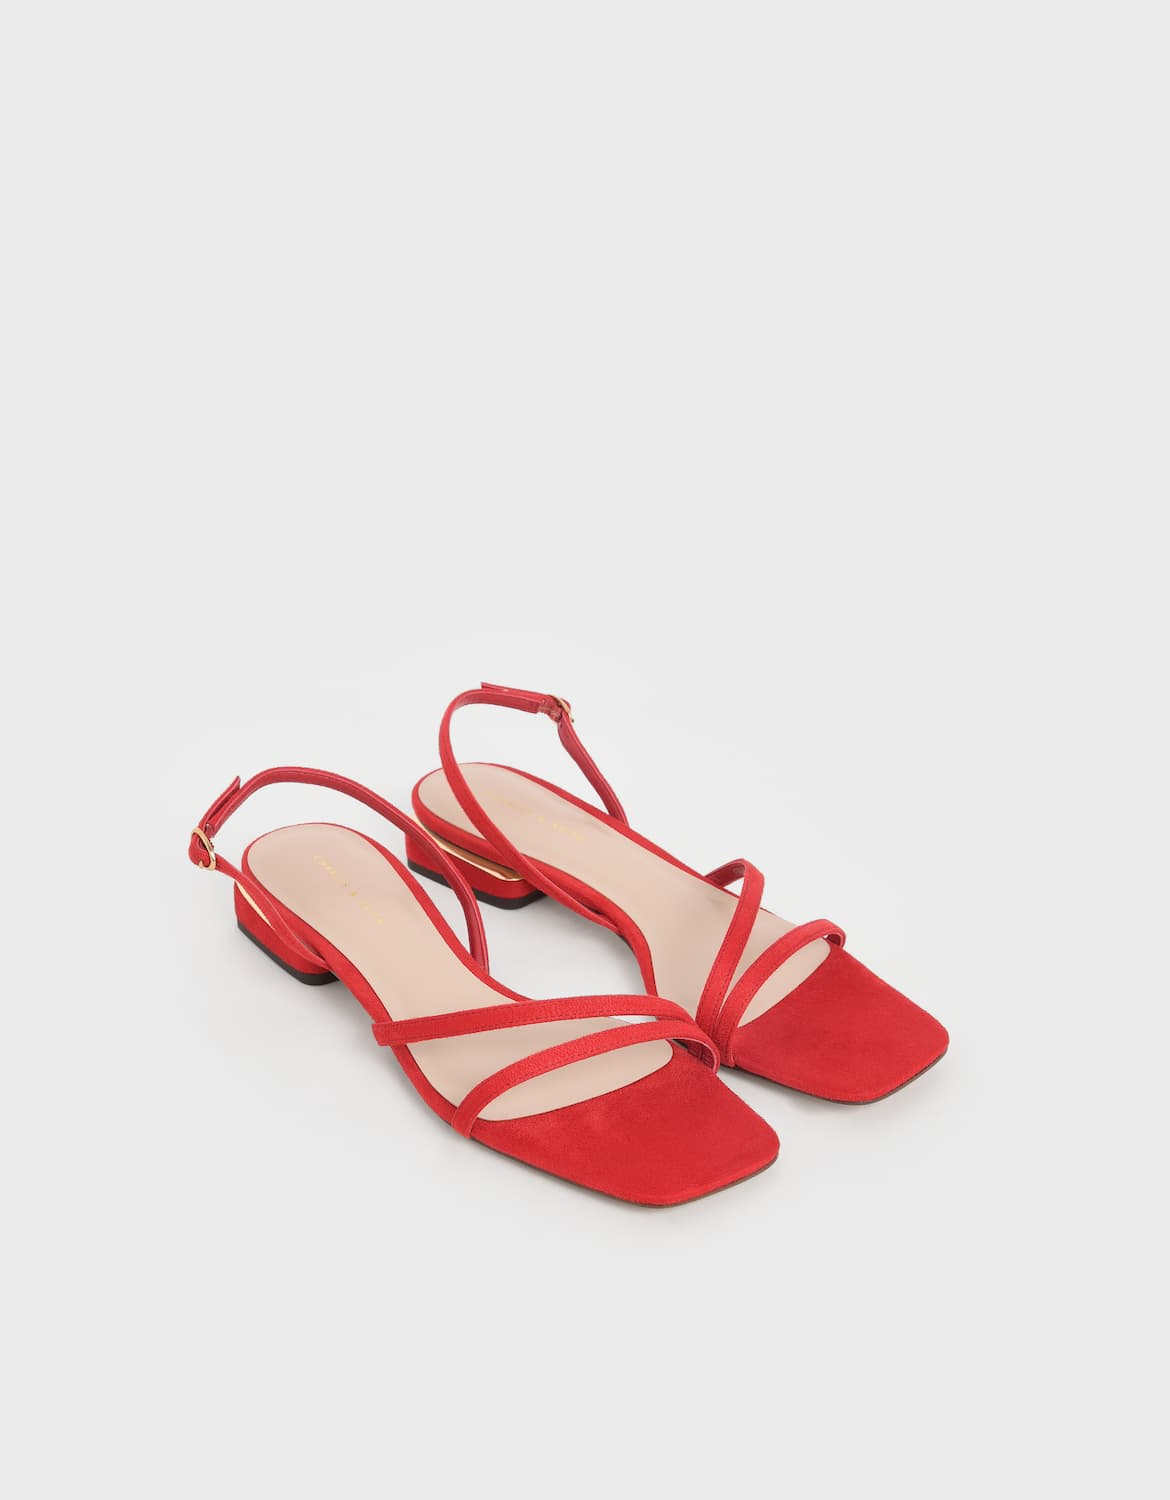 Women's textured strappy slingback heels in red – CHARLES & KEITH